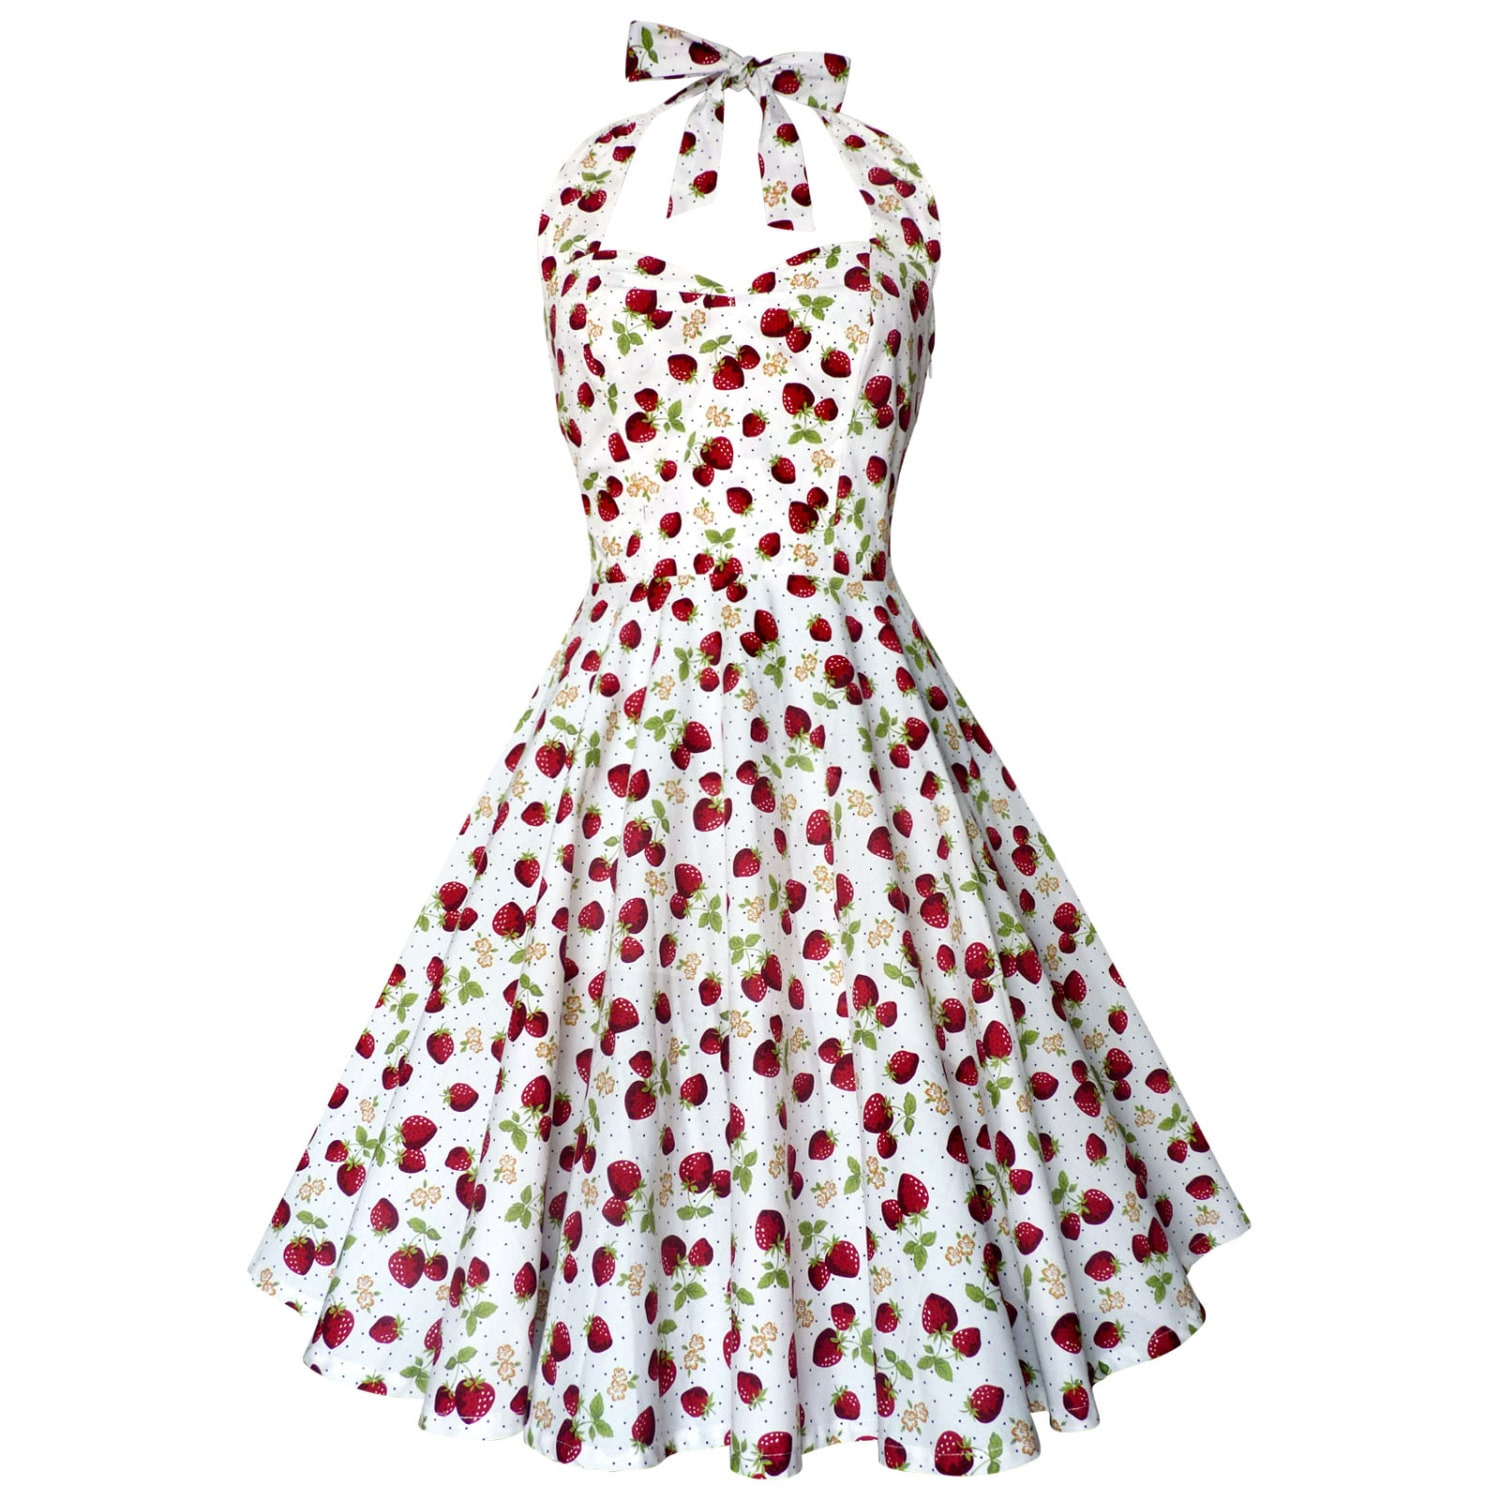 7cd23cebb647e White Strawberry Dress Summer Dress Vintage Dress Rockabilly